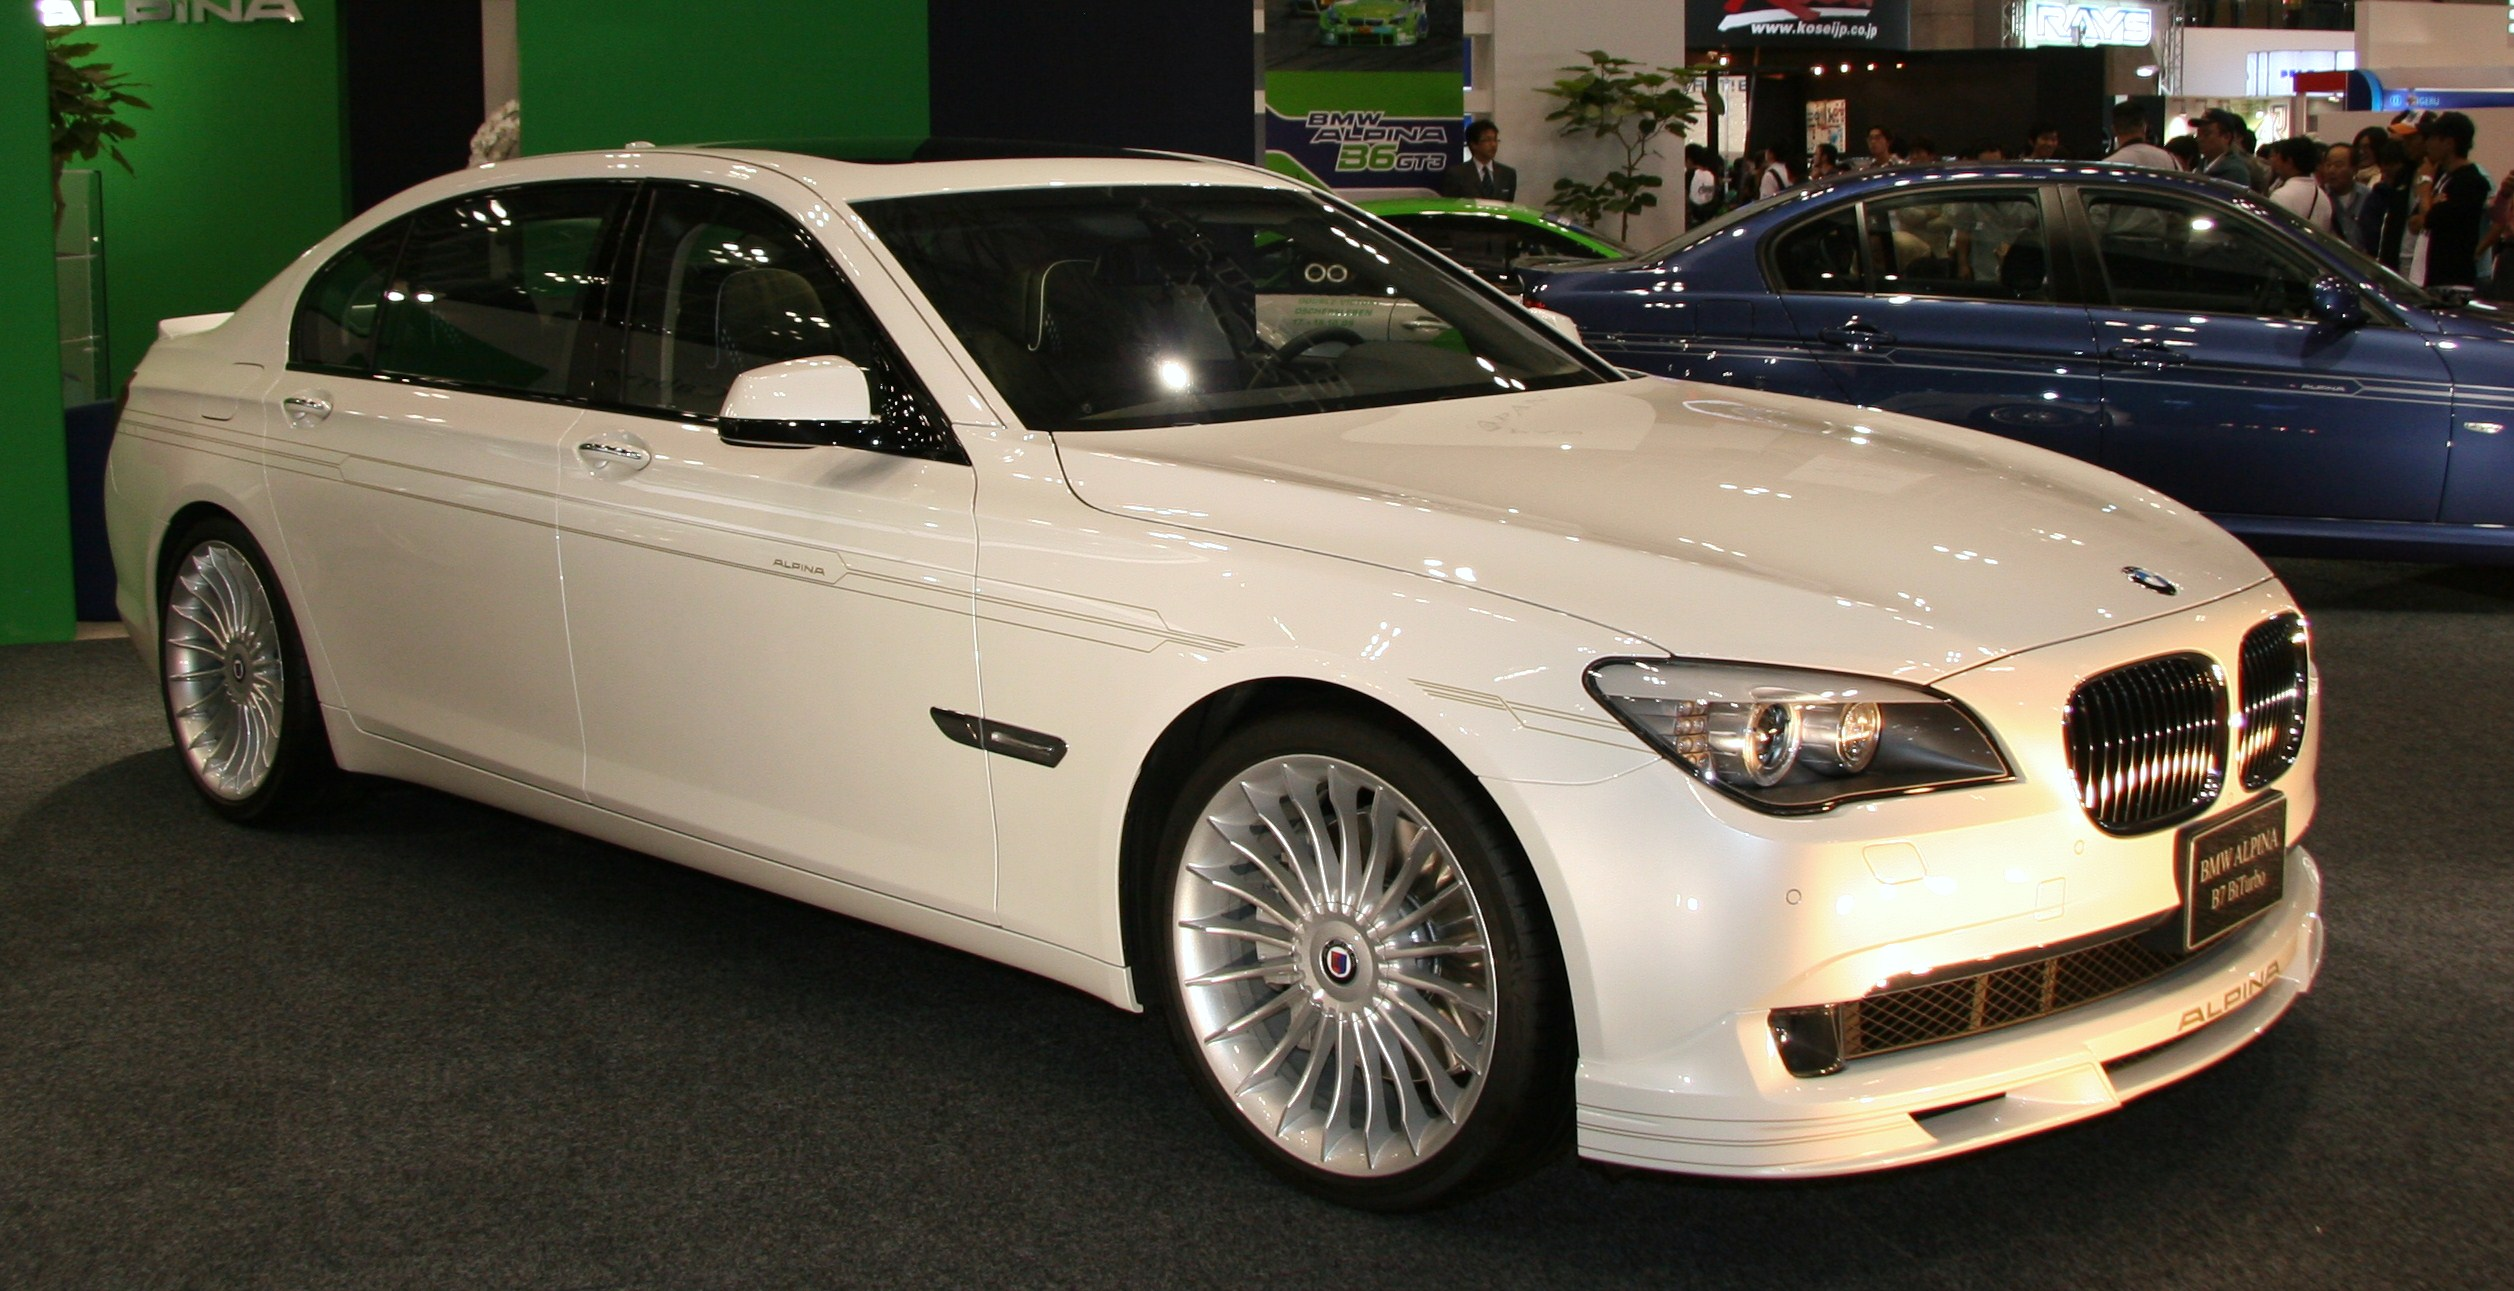 Bmw limousine photo - 2